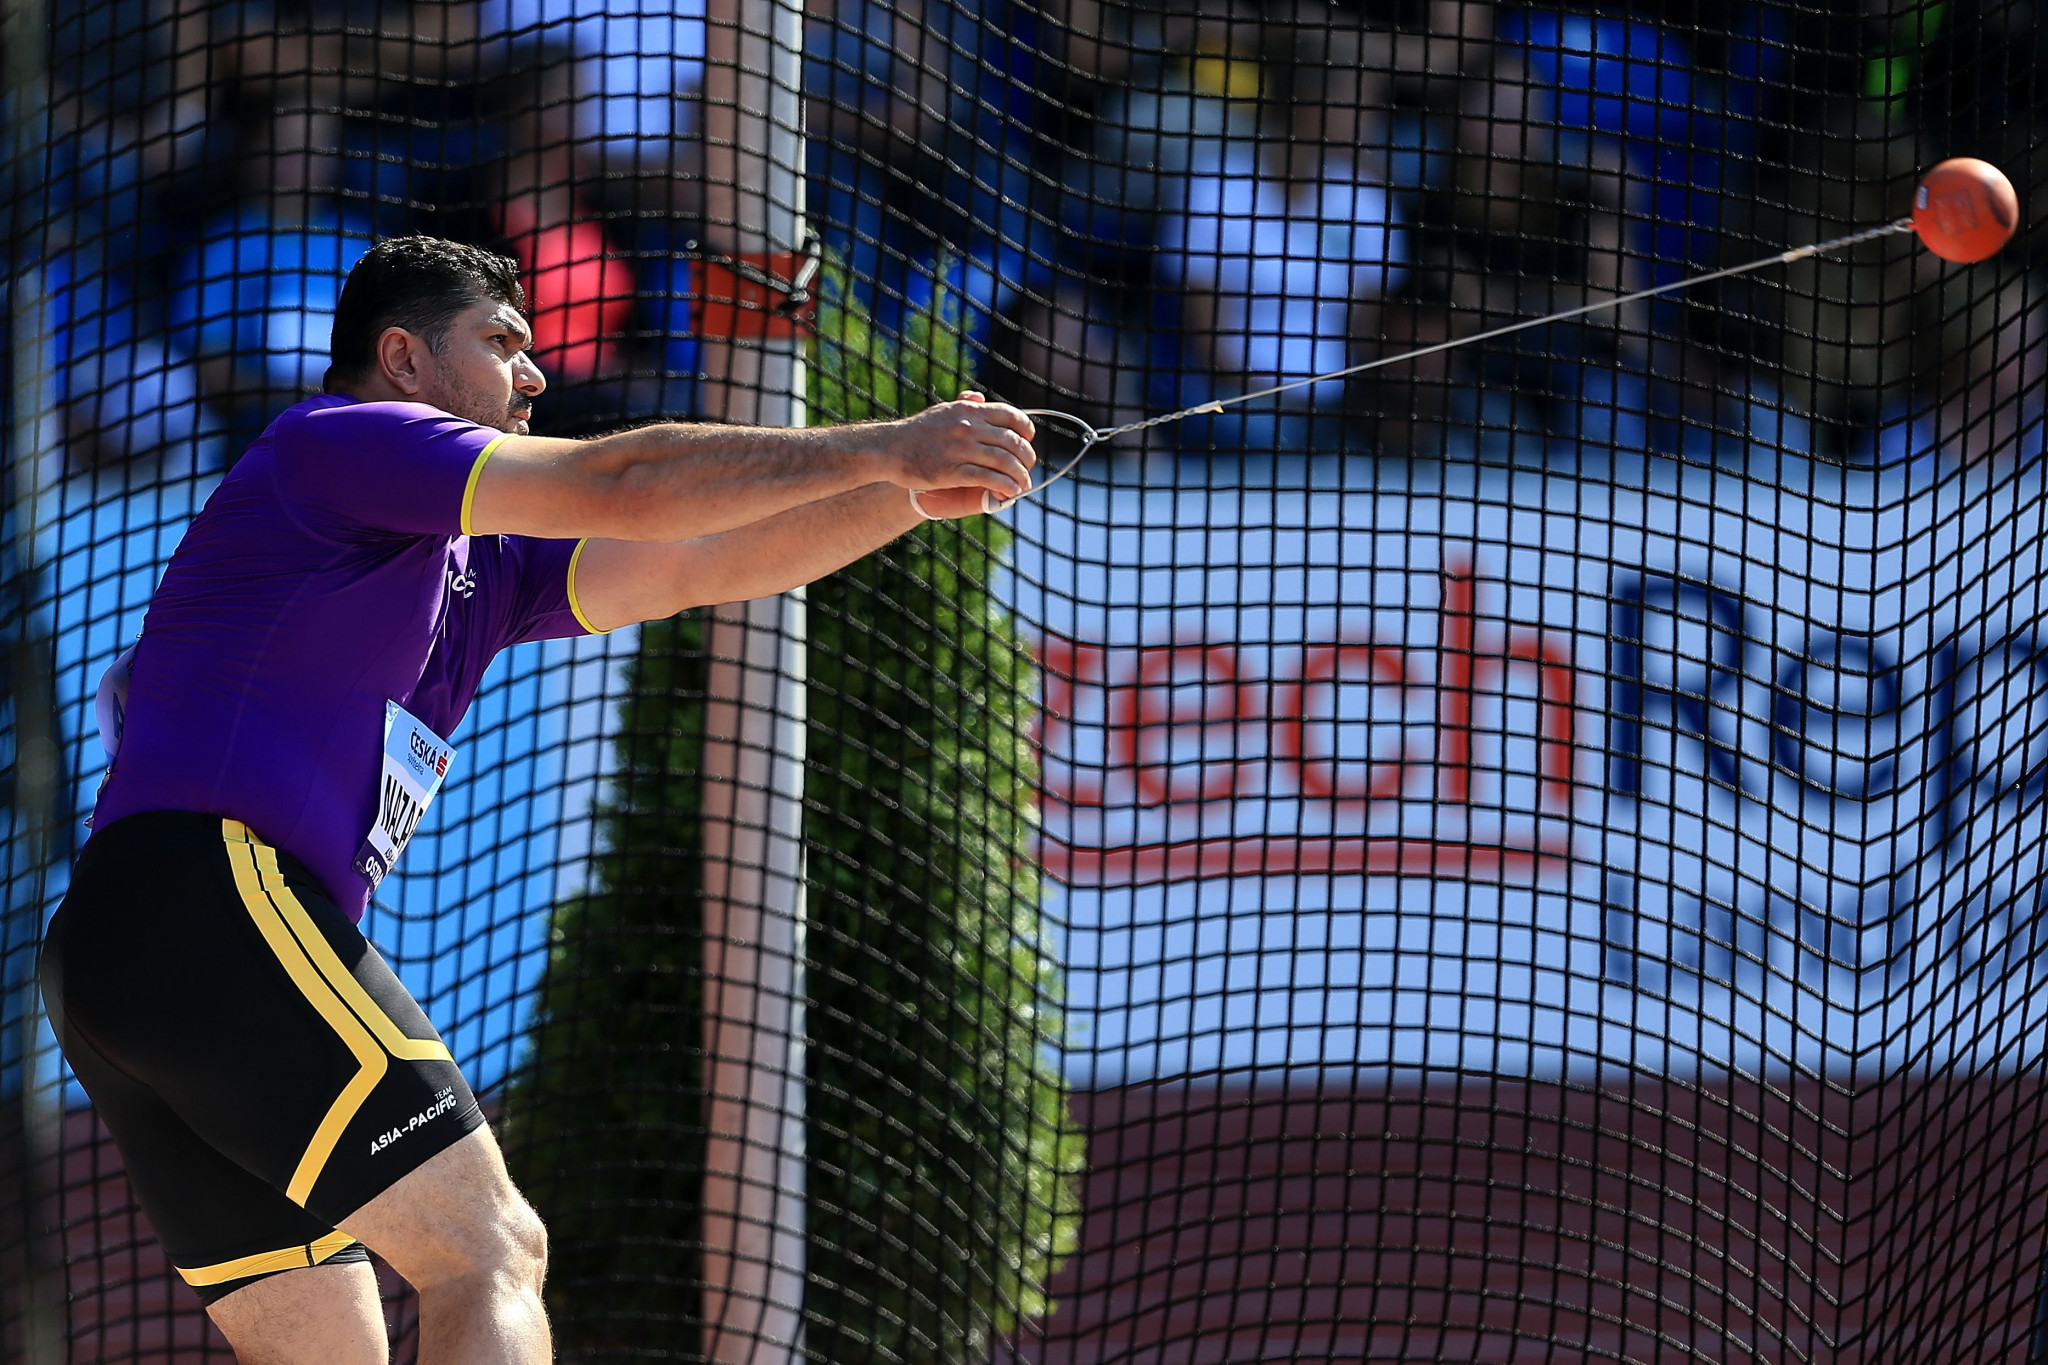 Olympic hammer champion suspended over positive retest